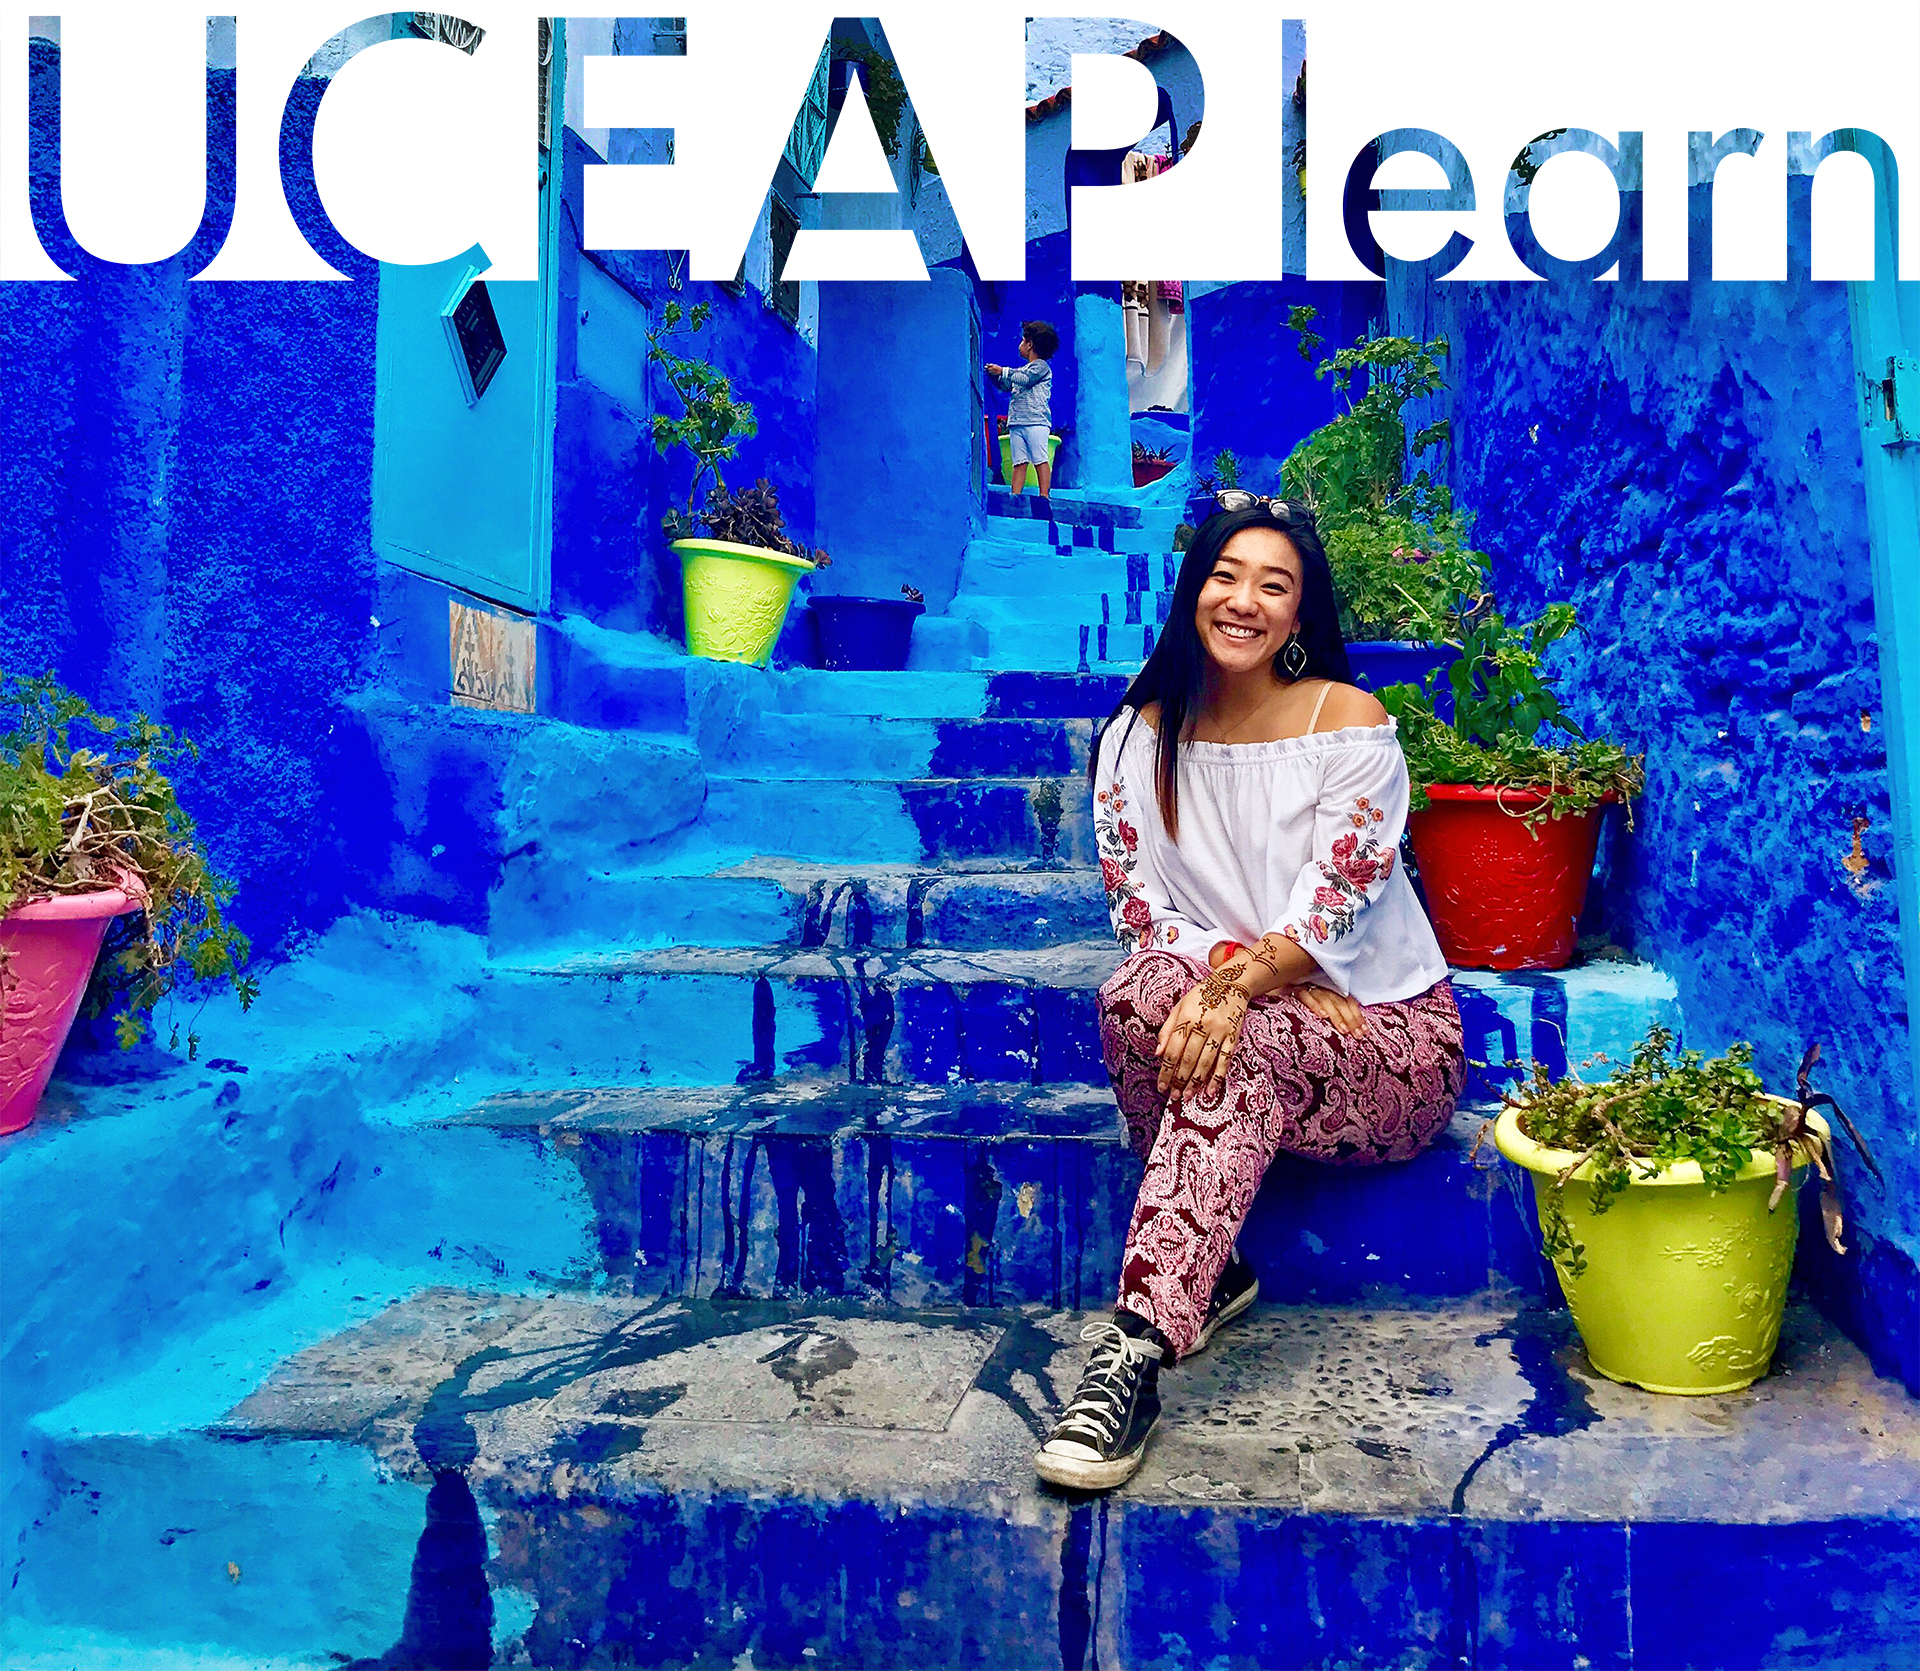 UCEAP student sits on colorful steps in Morocco